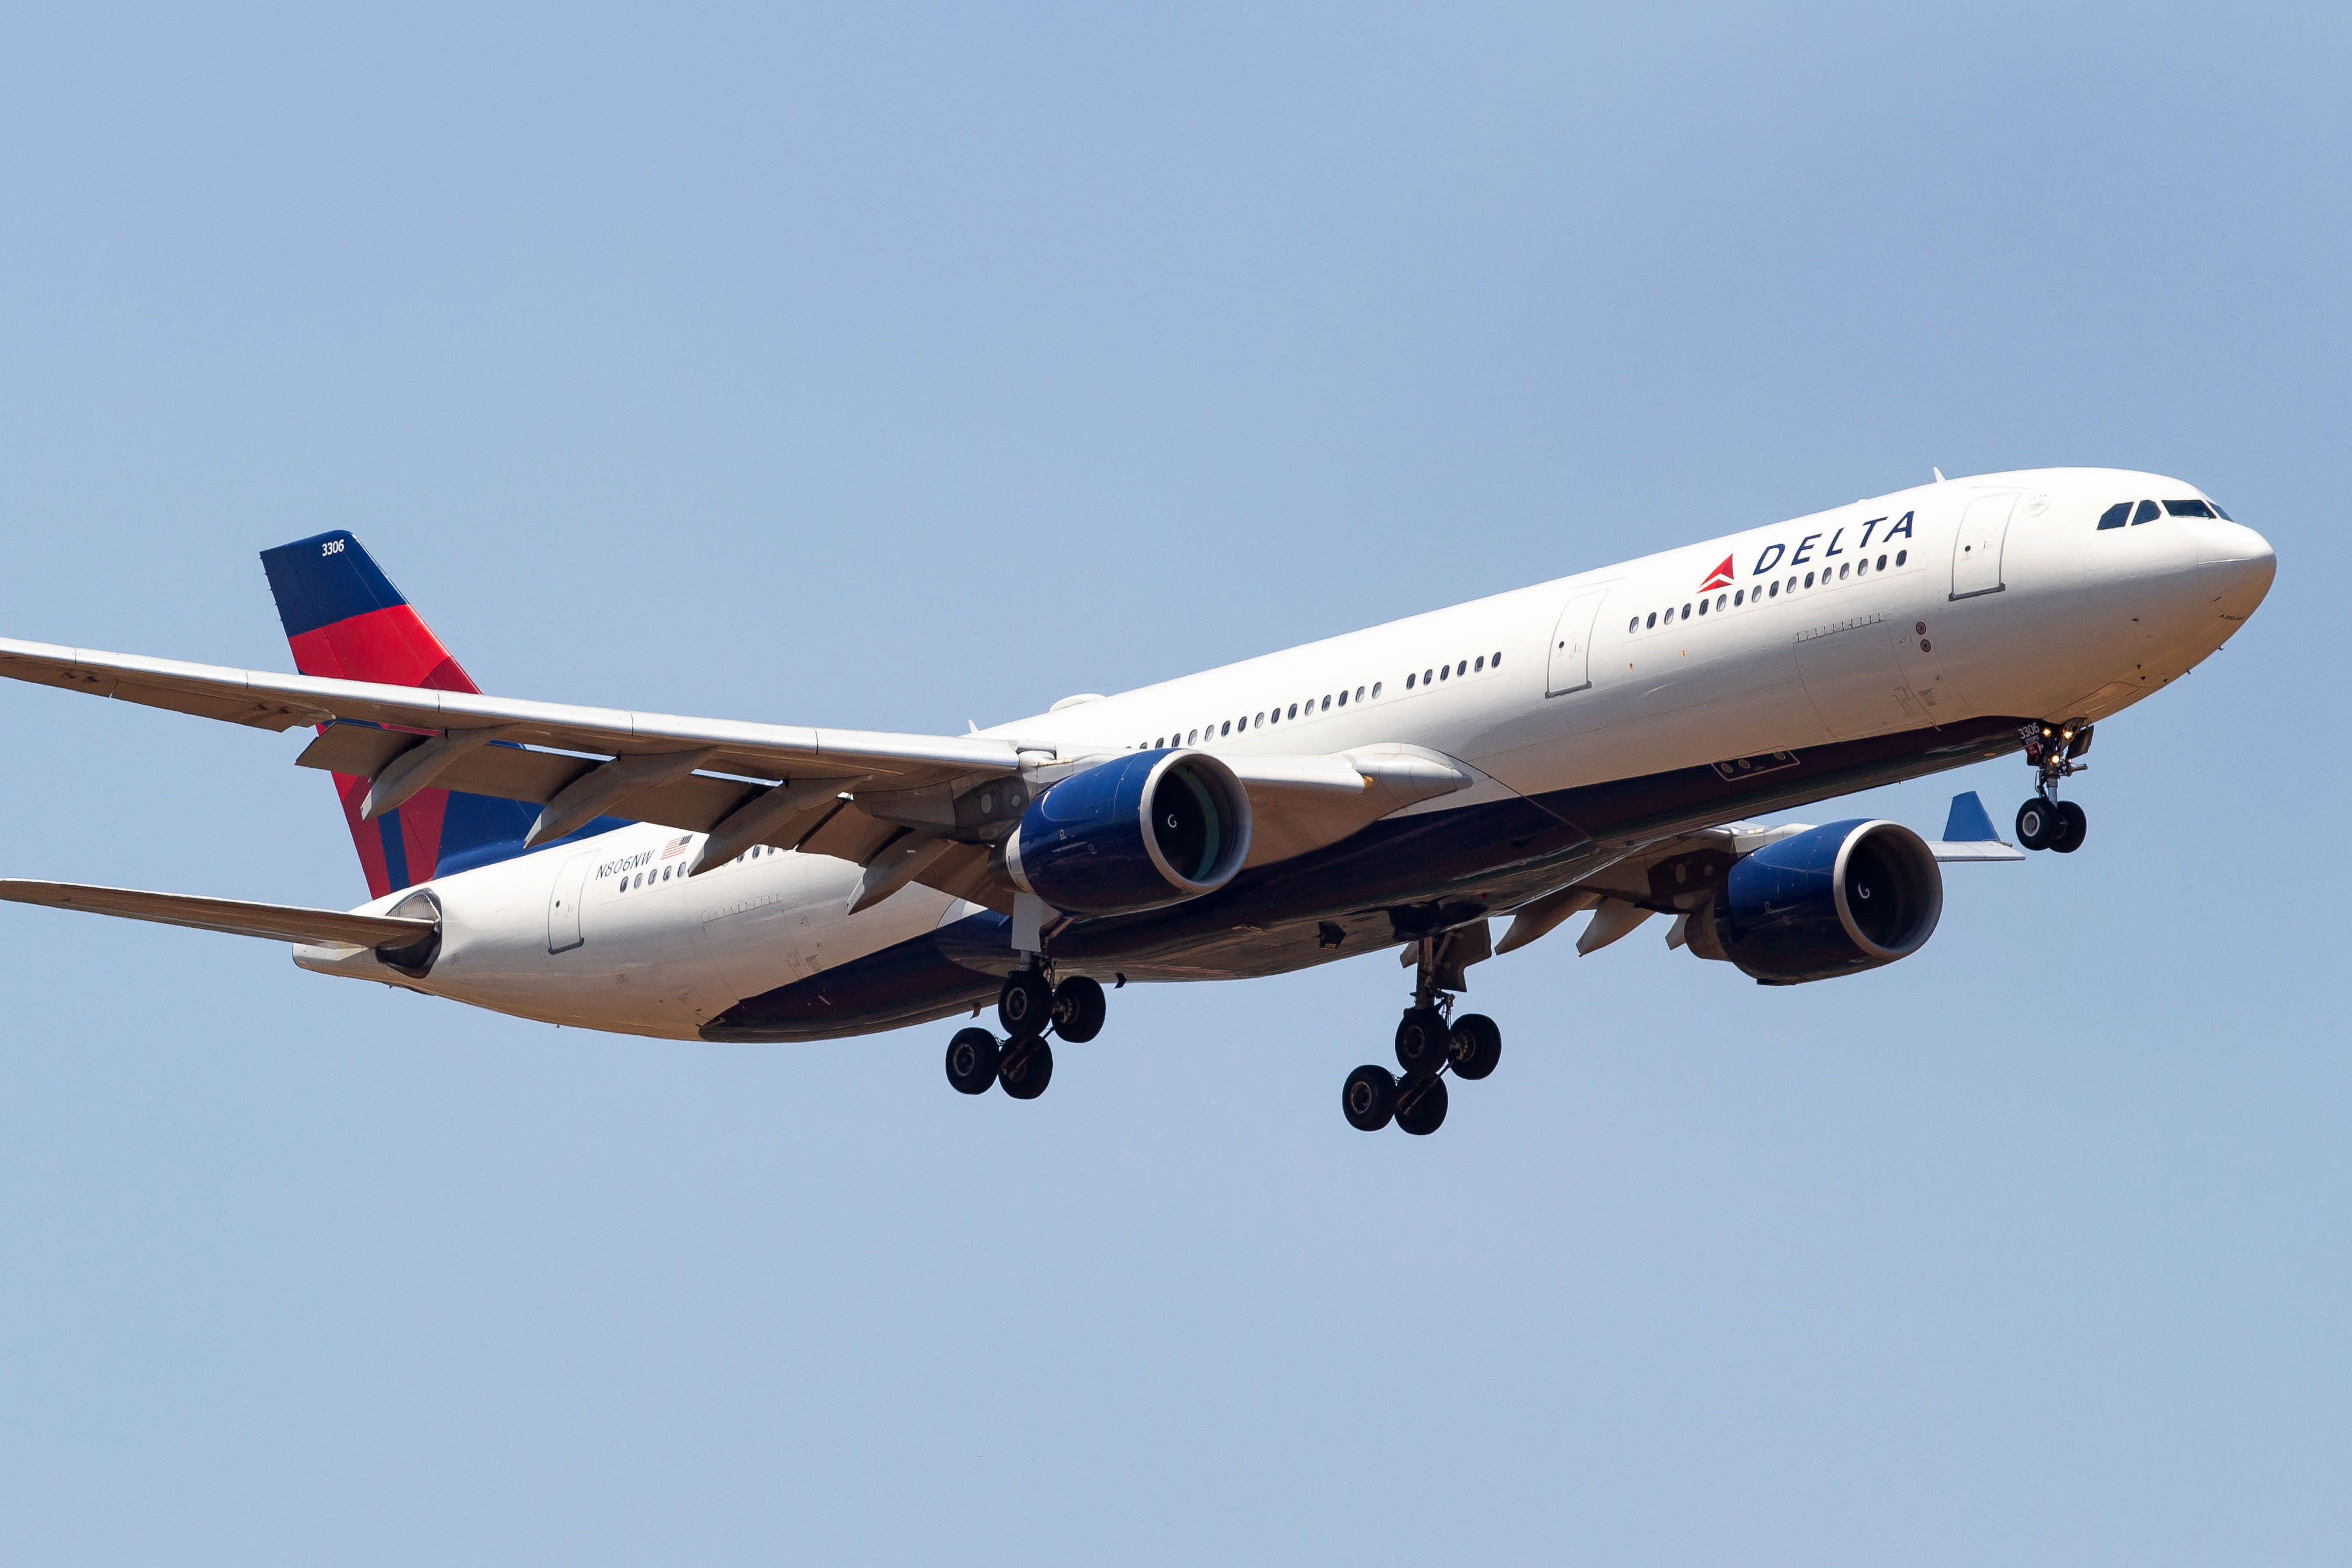 American Express updates Delta SkyMiles cards with limited time welcome offers and new benefits